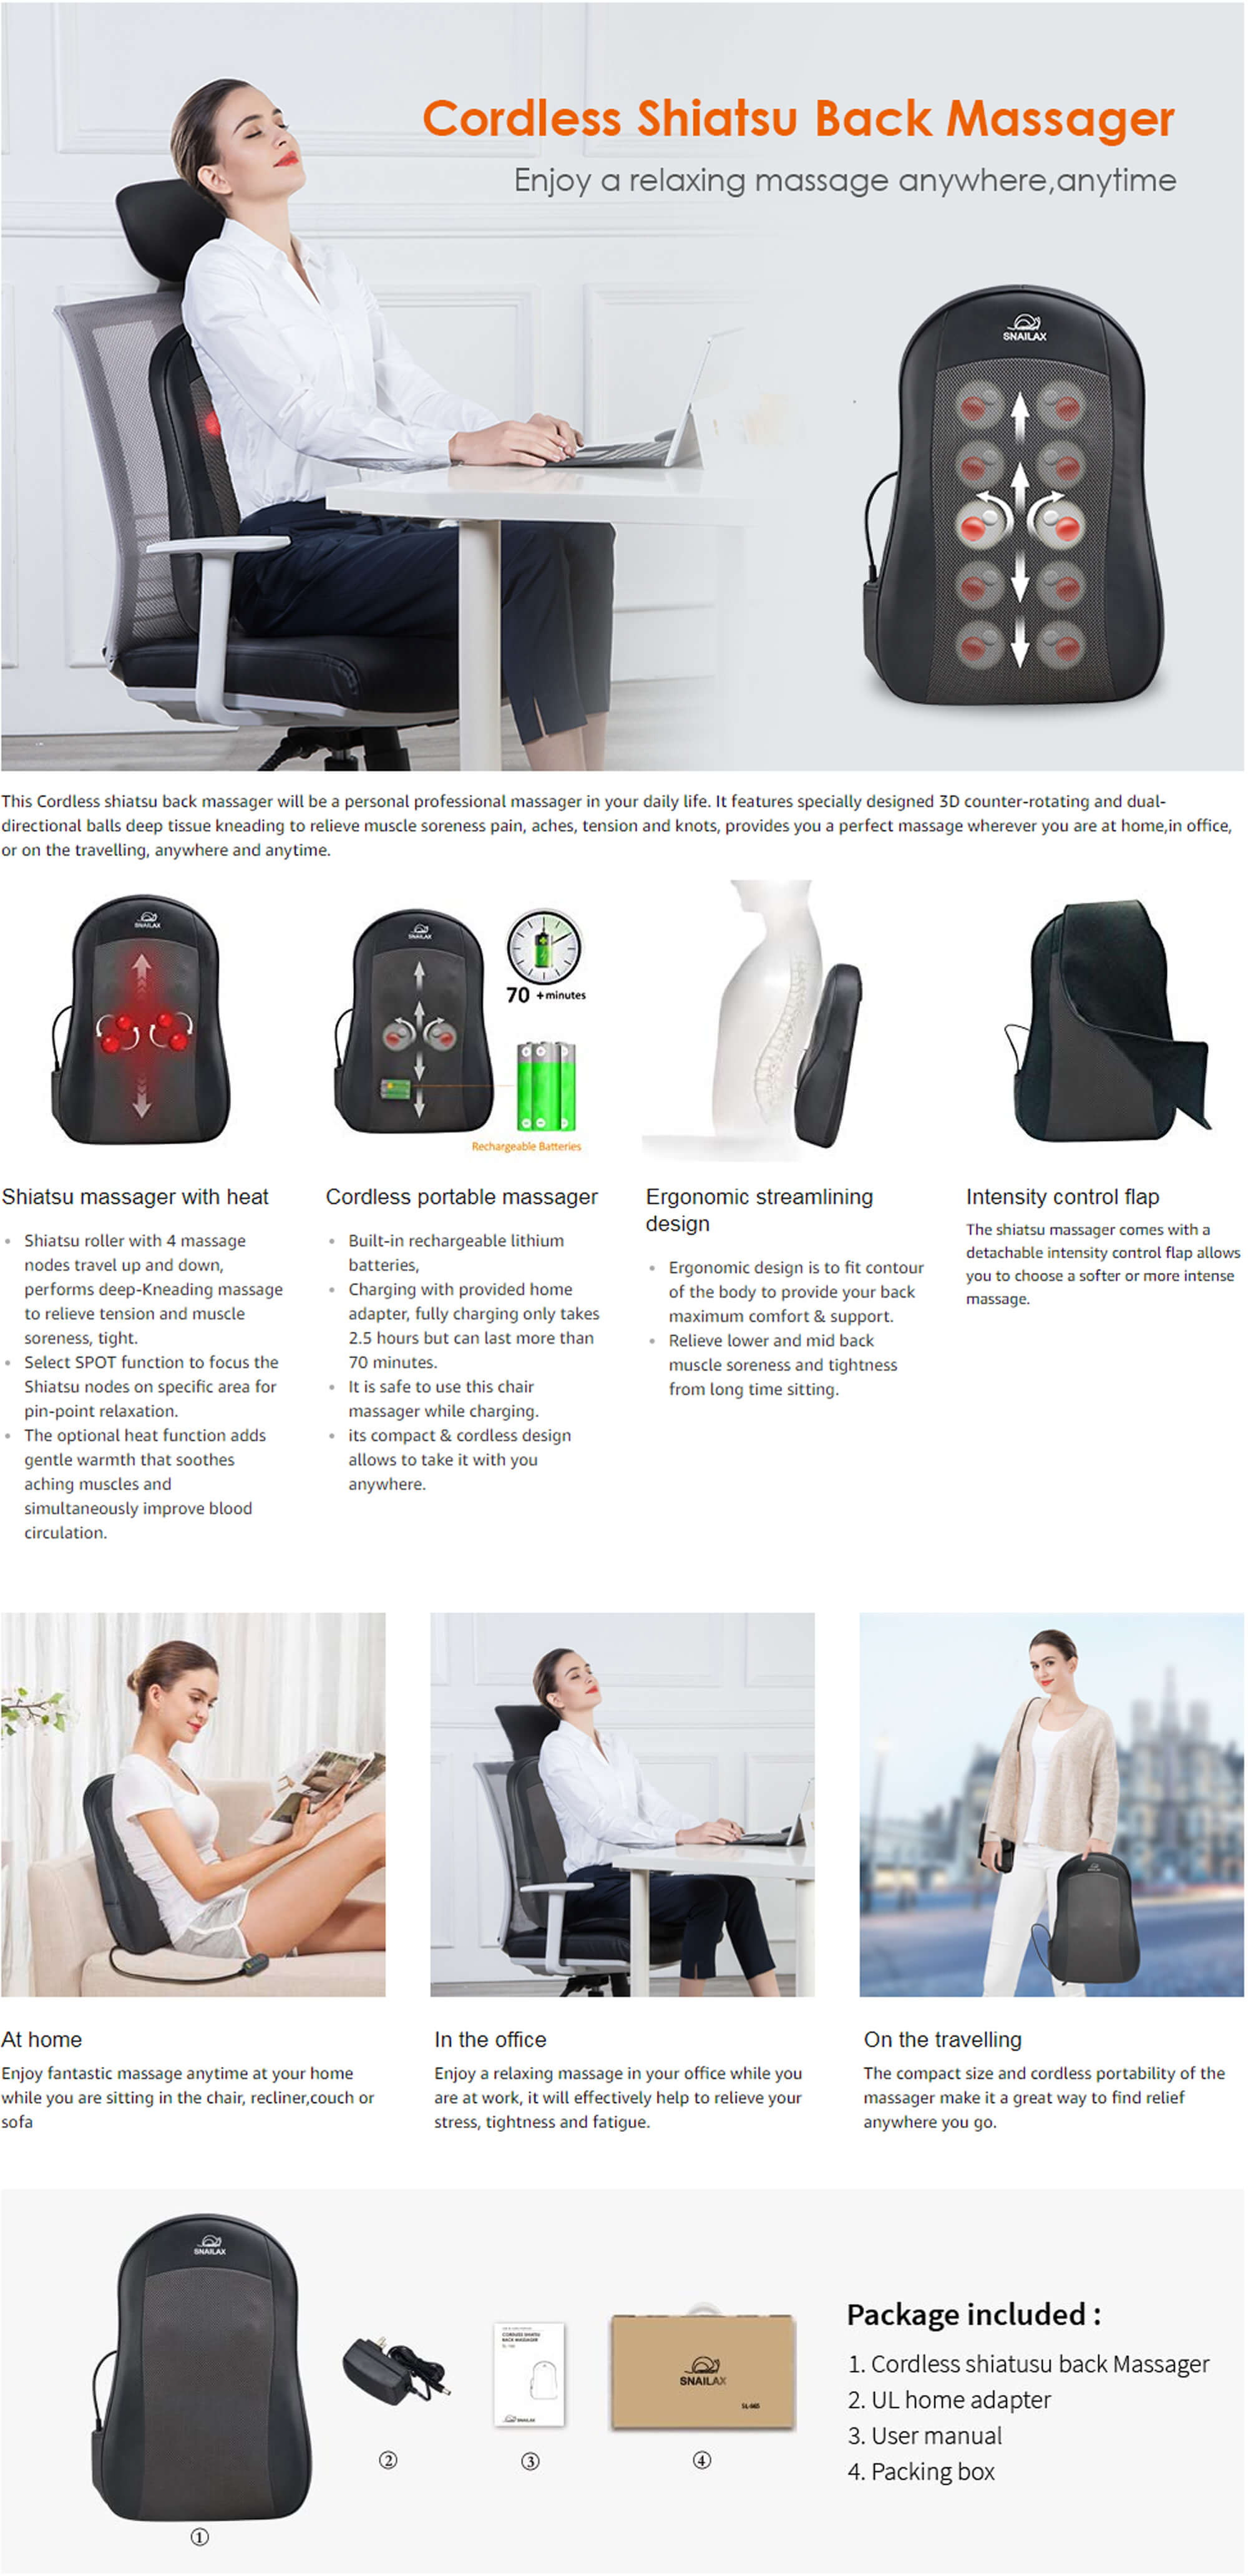 Cordless Back Massager Features